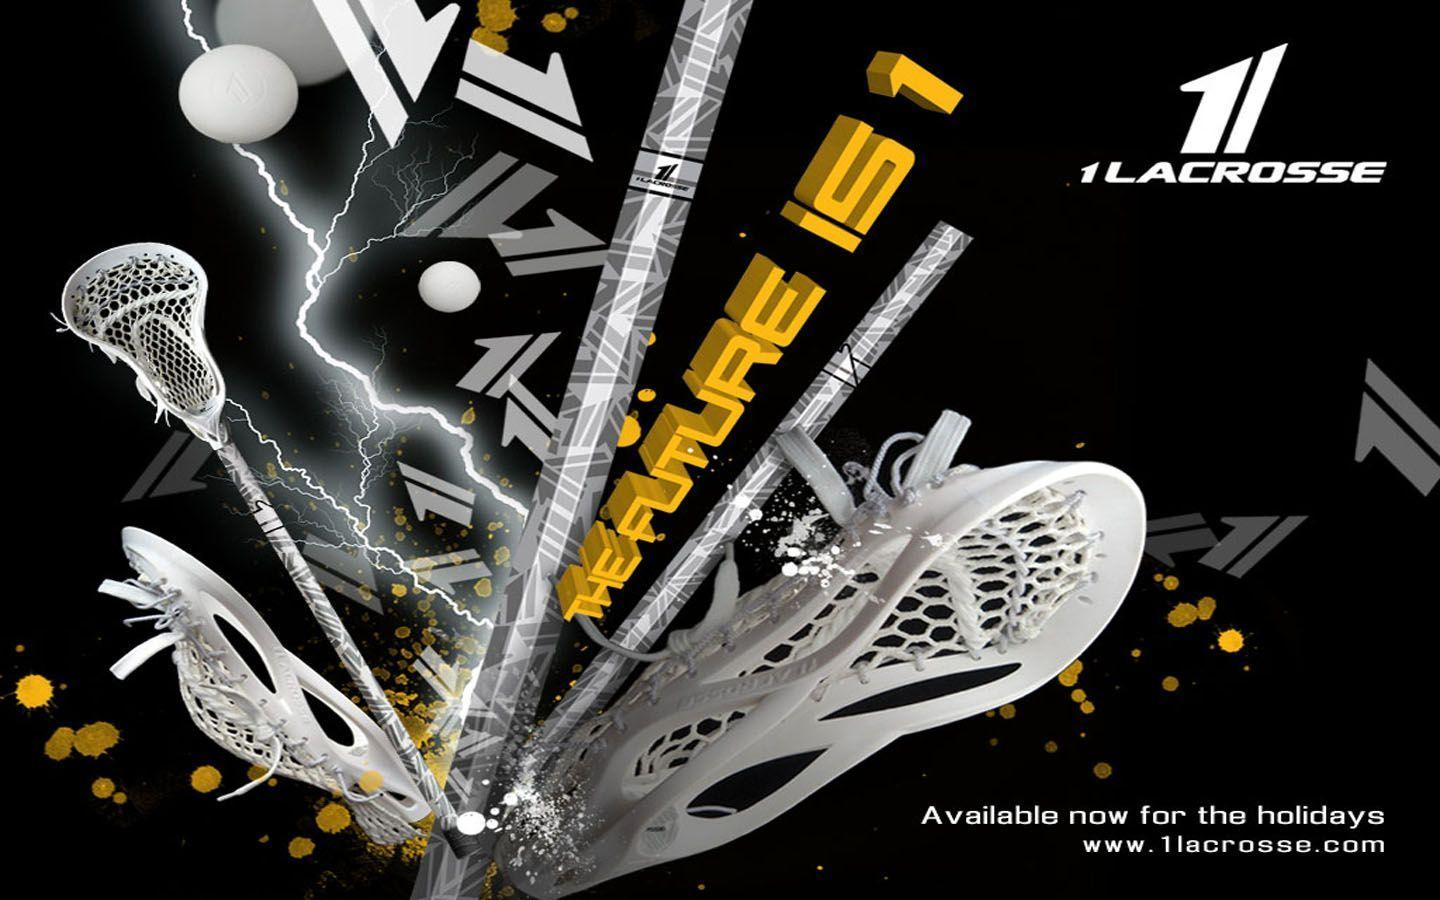 Lacrosse wallpaper